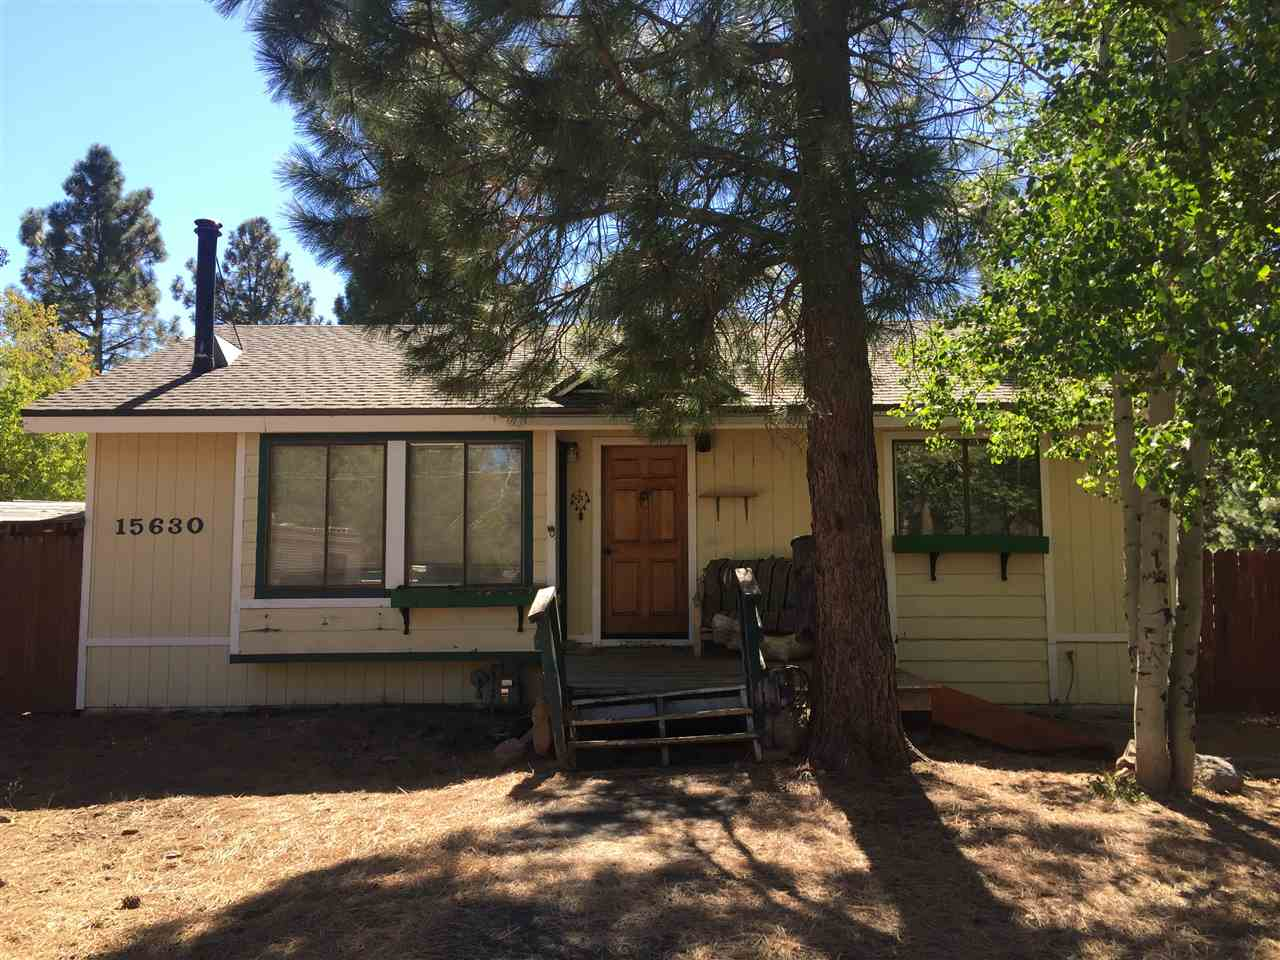 Image for 15630 Archery View, Truckee, CA 96161